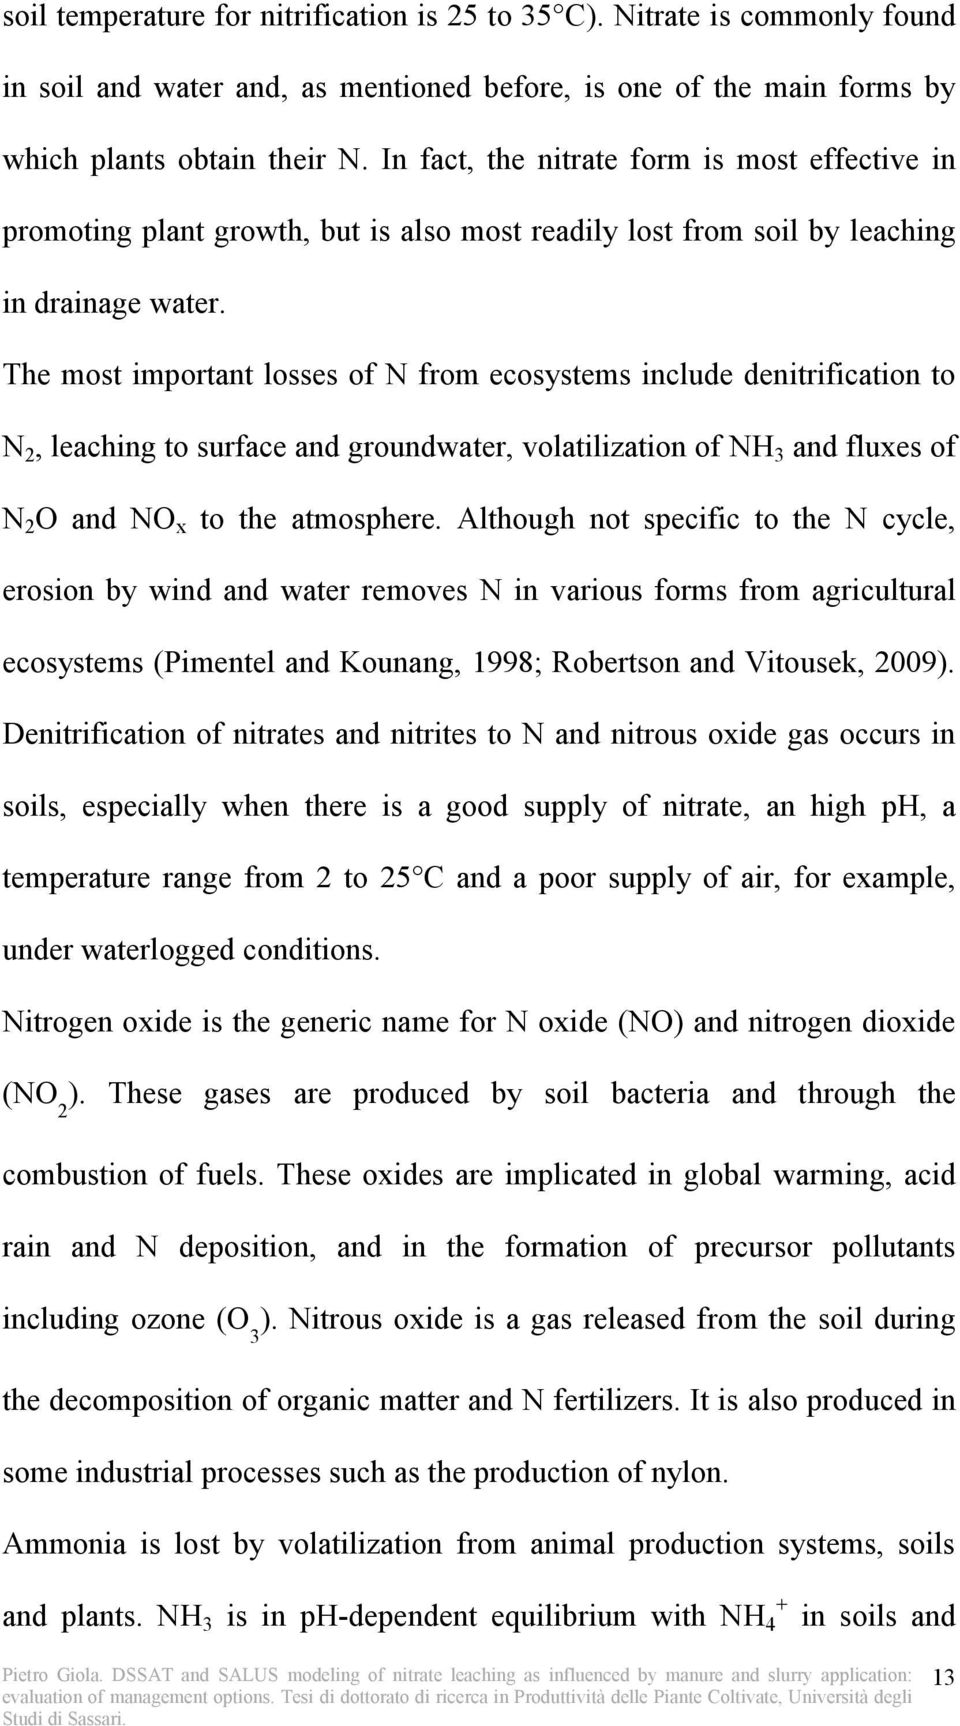 The most important losses of N from ecosystems include denitrification to N 2, leaching to surface and groundwater, volatilization of NH 3 and fluxes of N 2 O and NO x to the atmosphere.